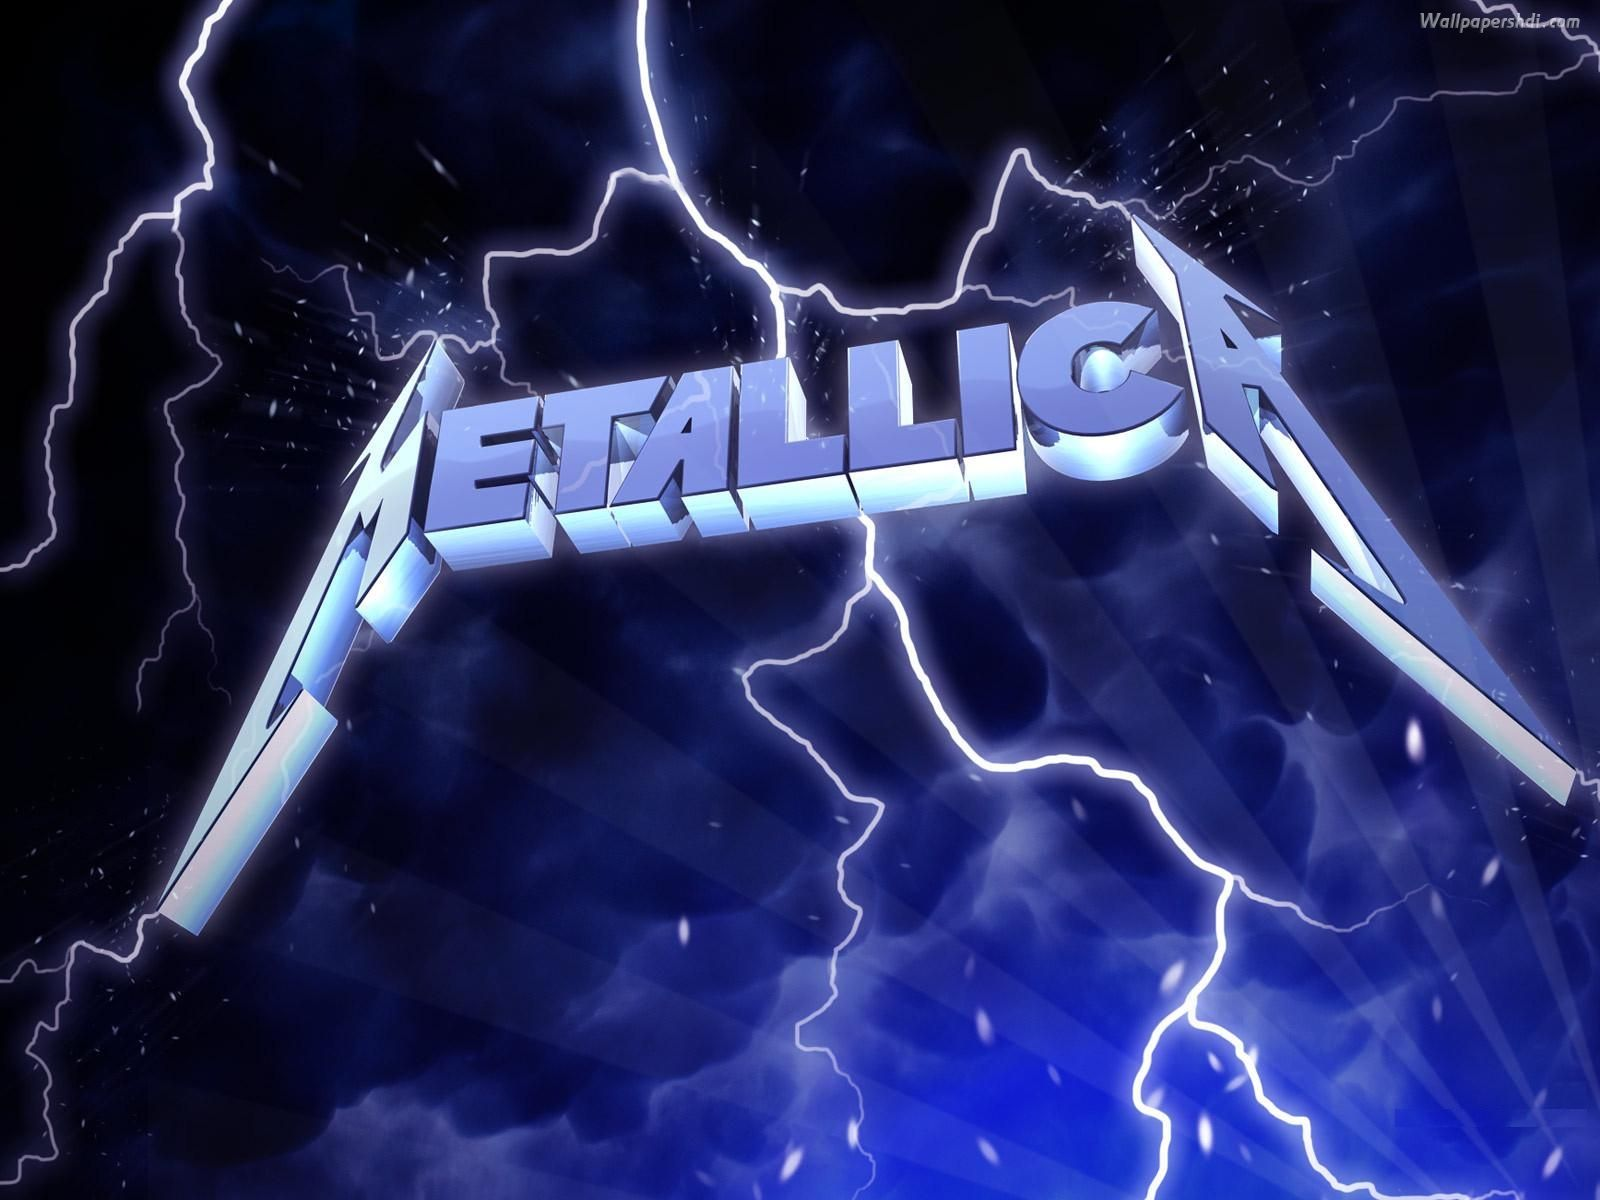 lighting metallica logo background puter picture hd wallpapers